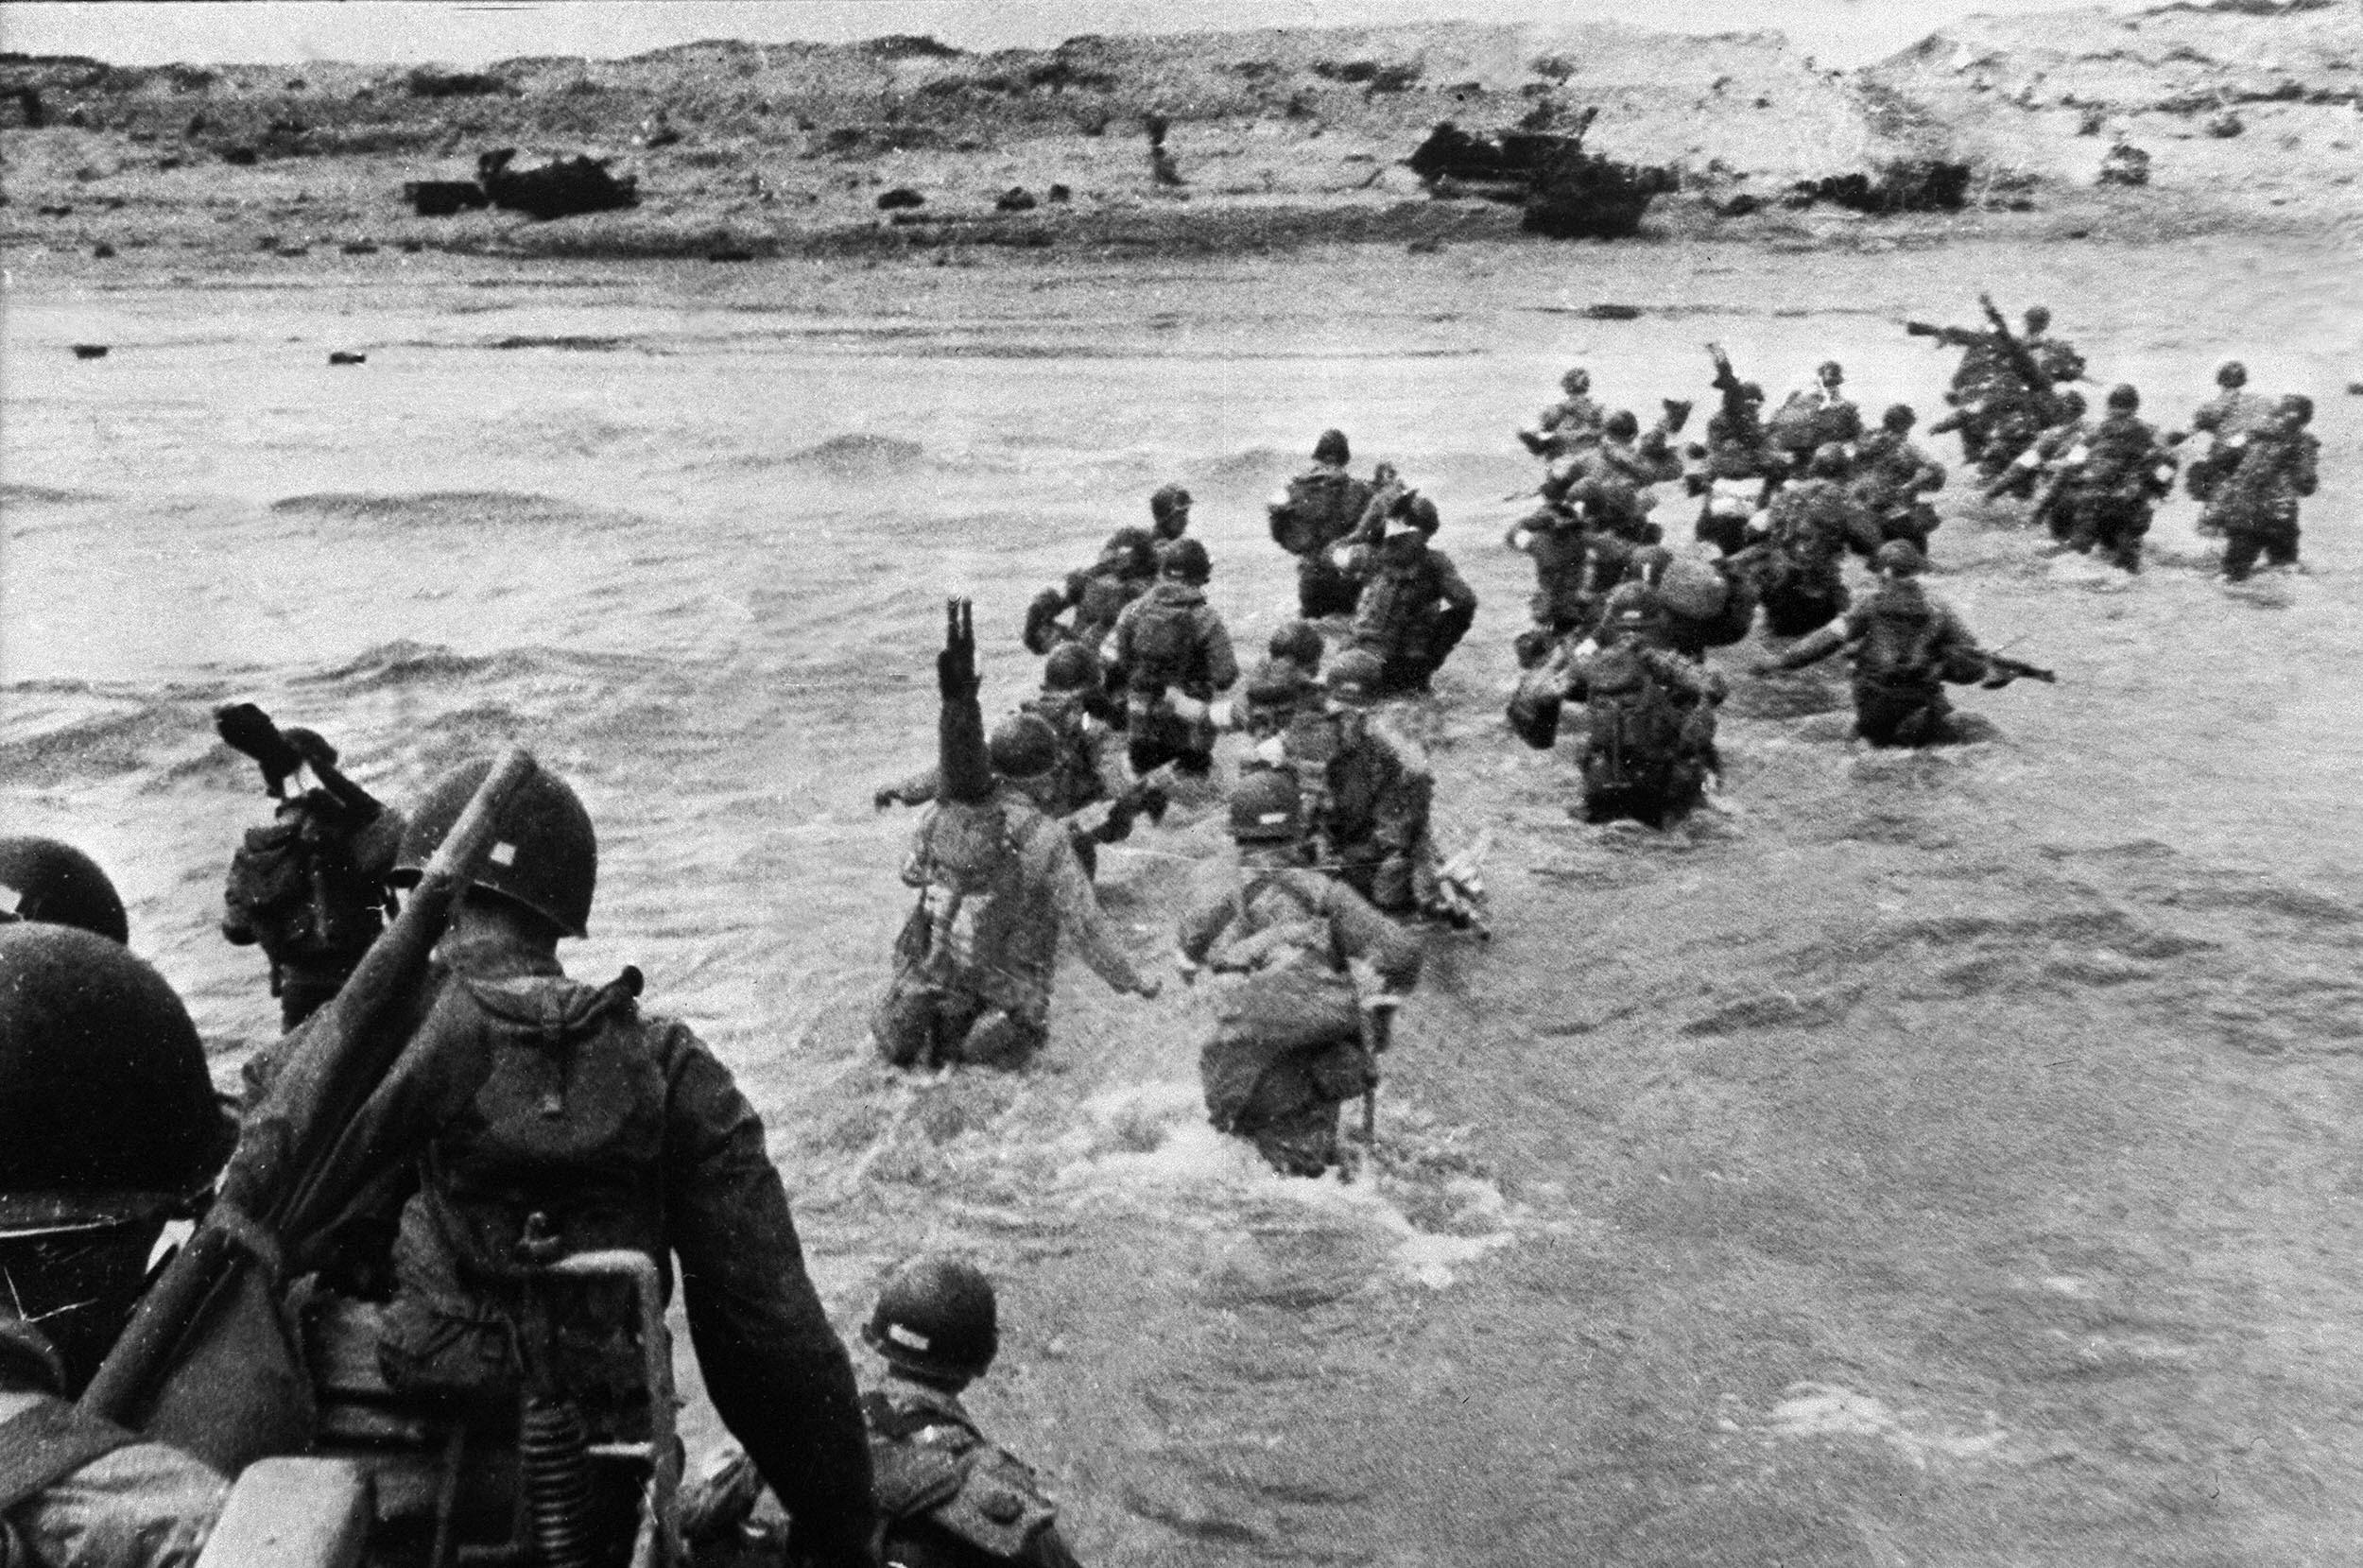 U.S. troops disembark from landing crafts during D-Day June 6, 1944 after Allied forces stormed the Normandy beaches.